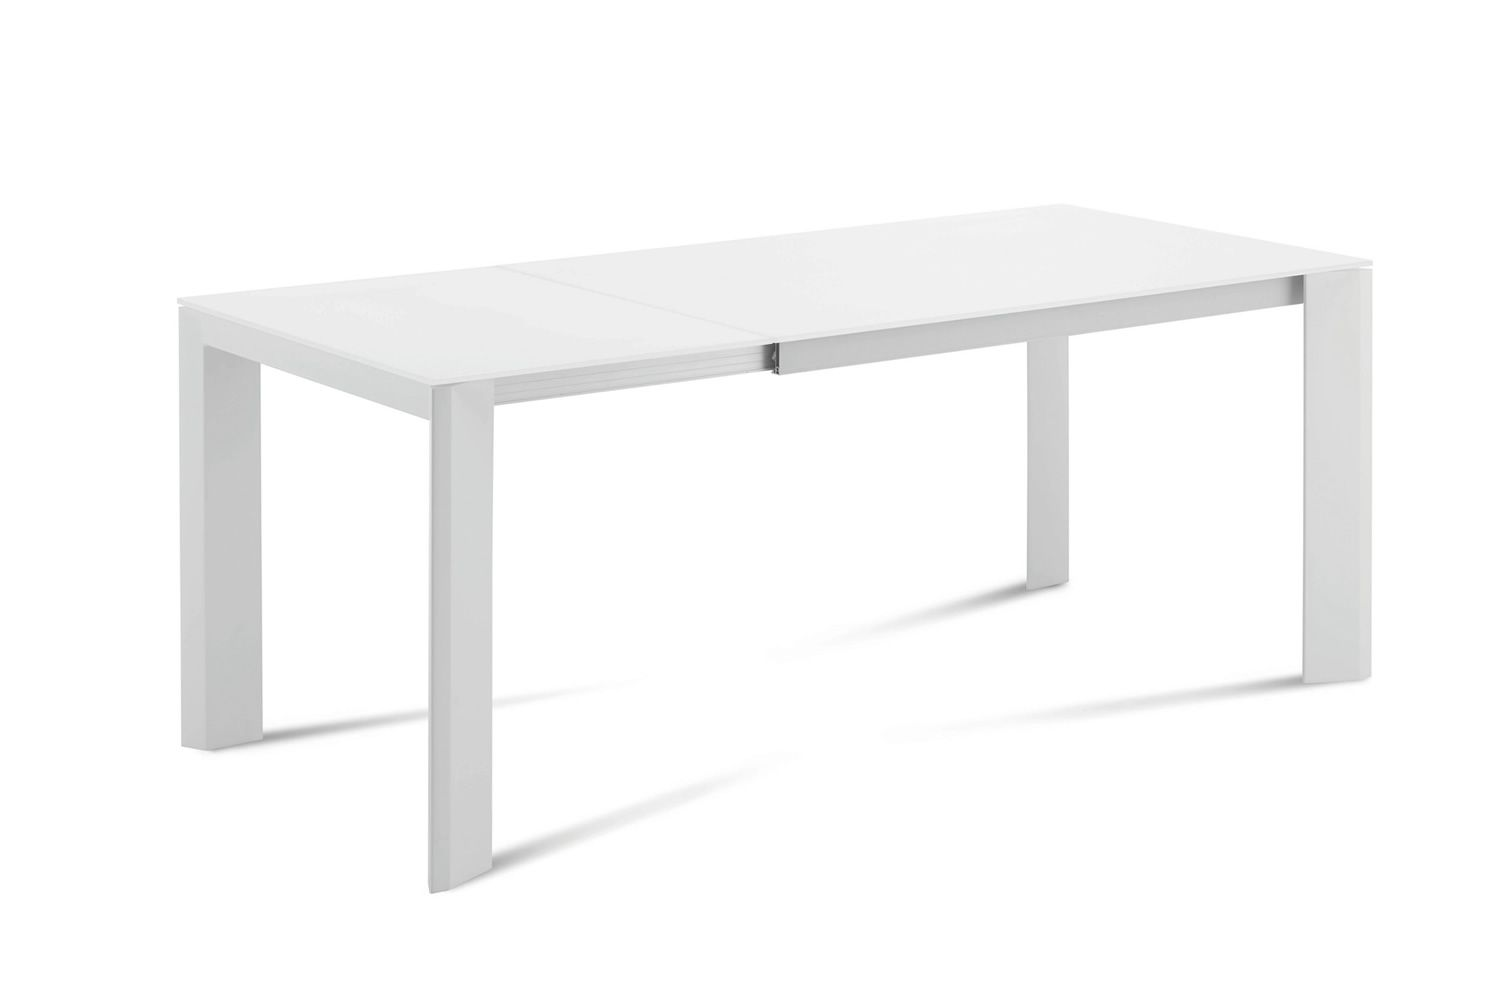 Neos 160 table domitalia en m tal plateau en verre ou for Table en acier